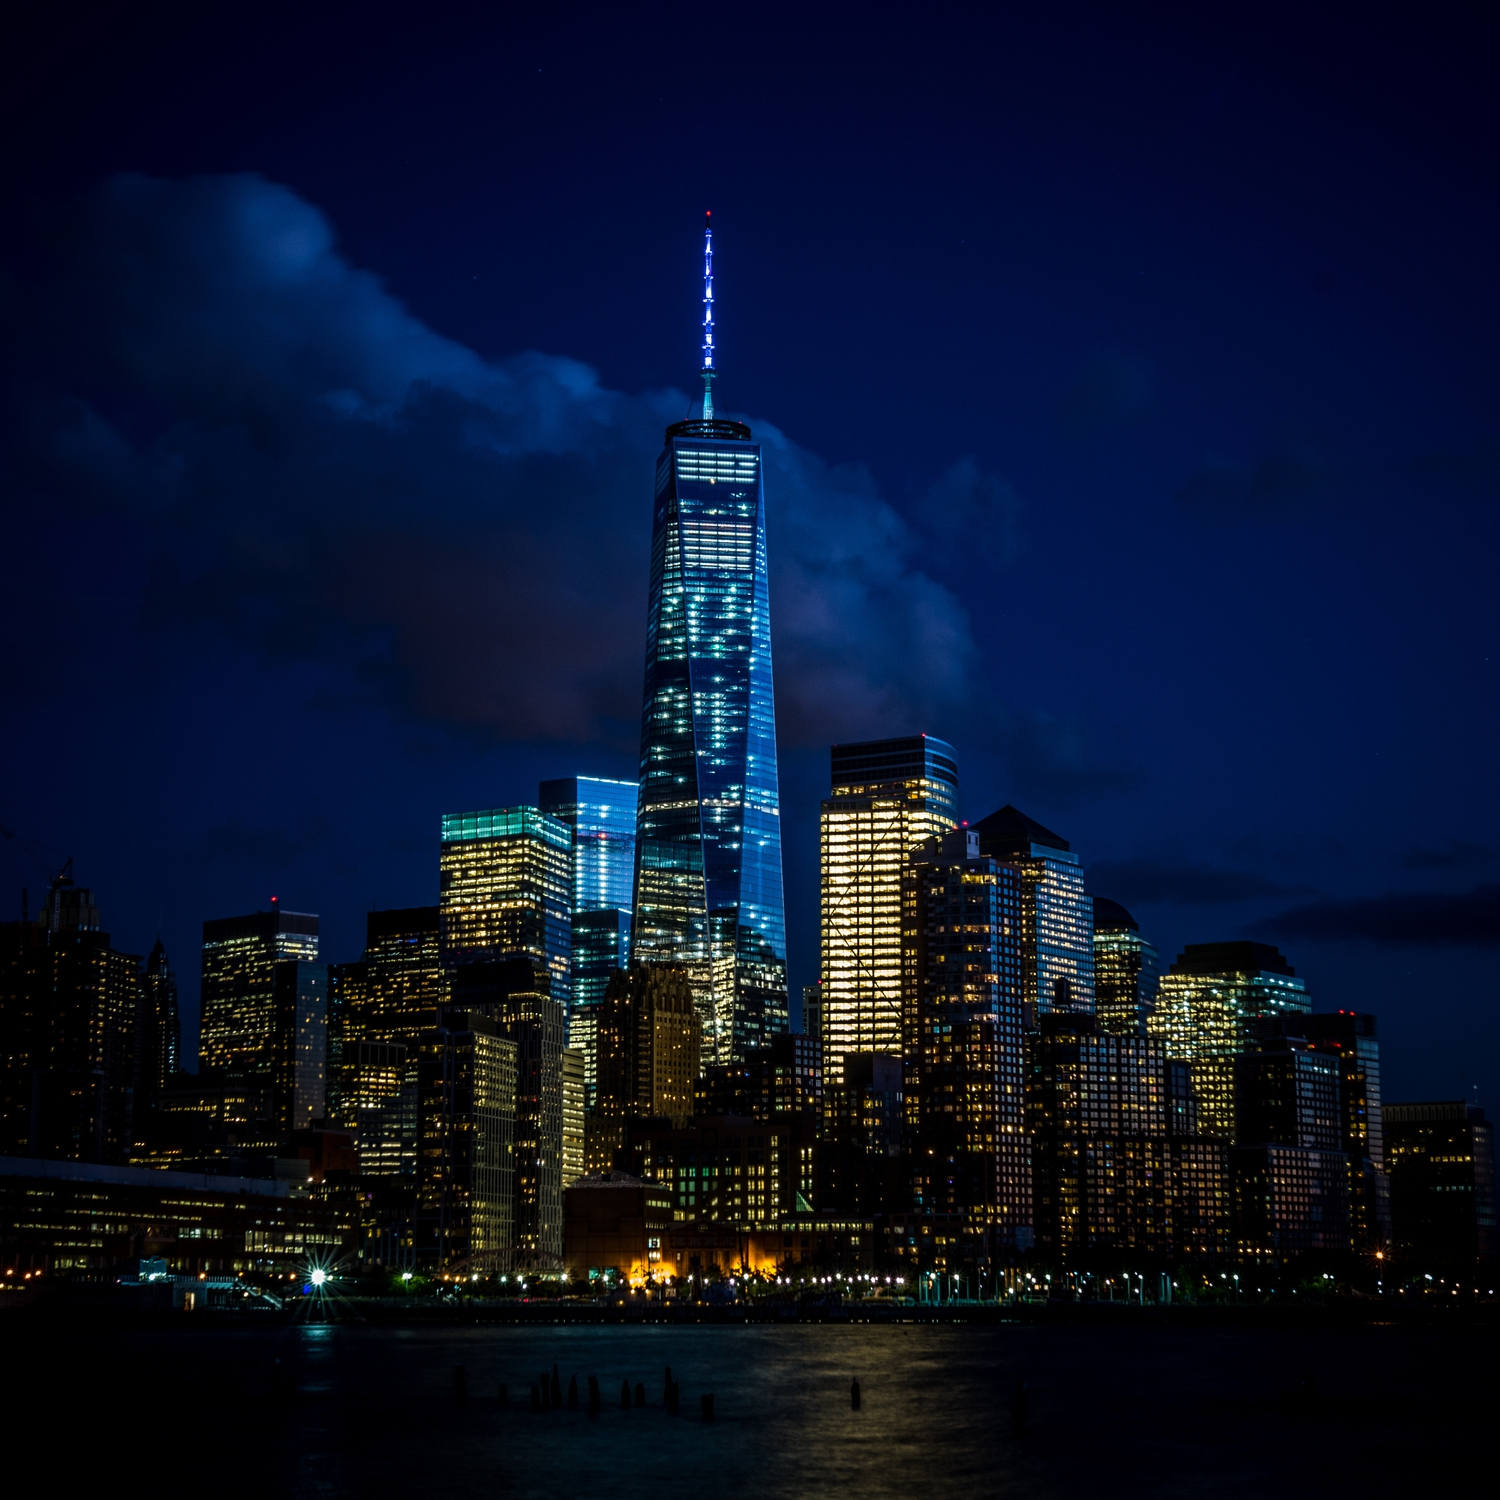 1WTC at night